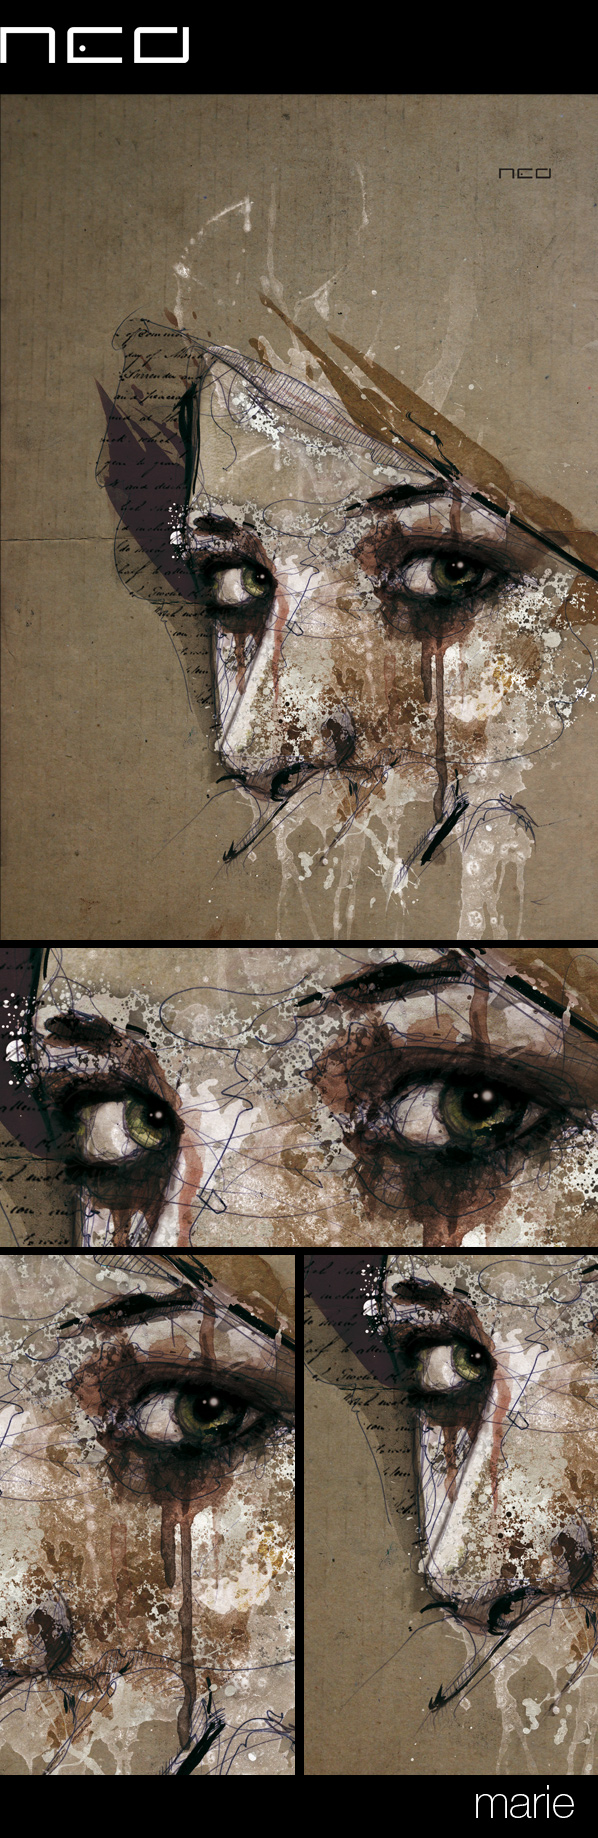 Watercolor artists names - Artist S Name Florian Nicolle Artwork S Title Marie Medium Mixed Media Using Bic Pen Watercolors And Chinese Ink Size Year